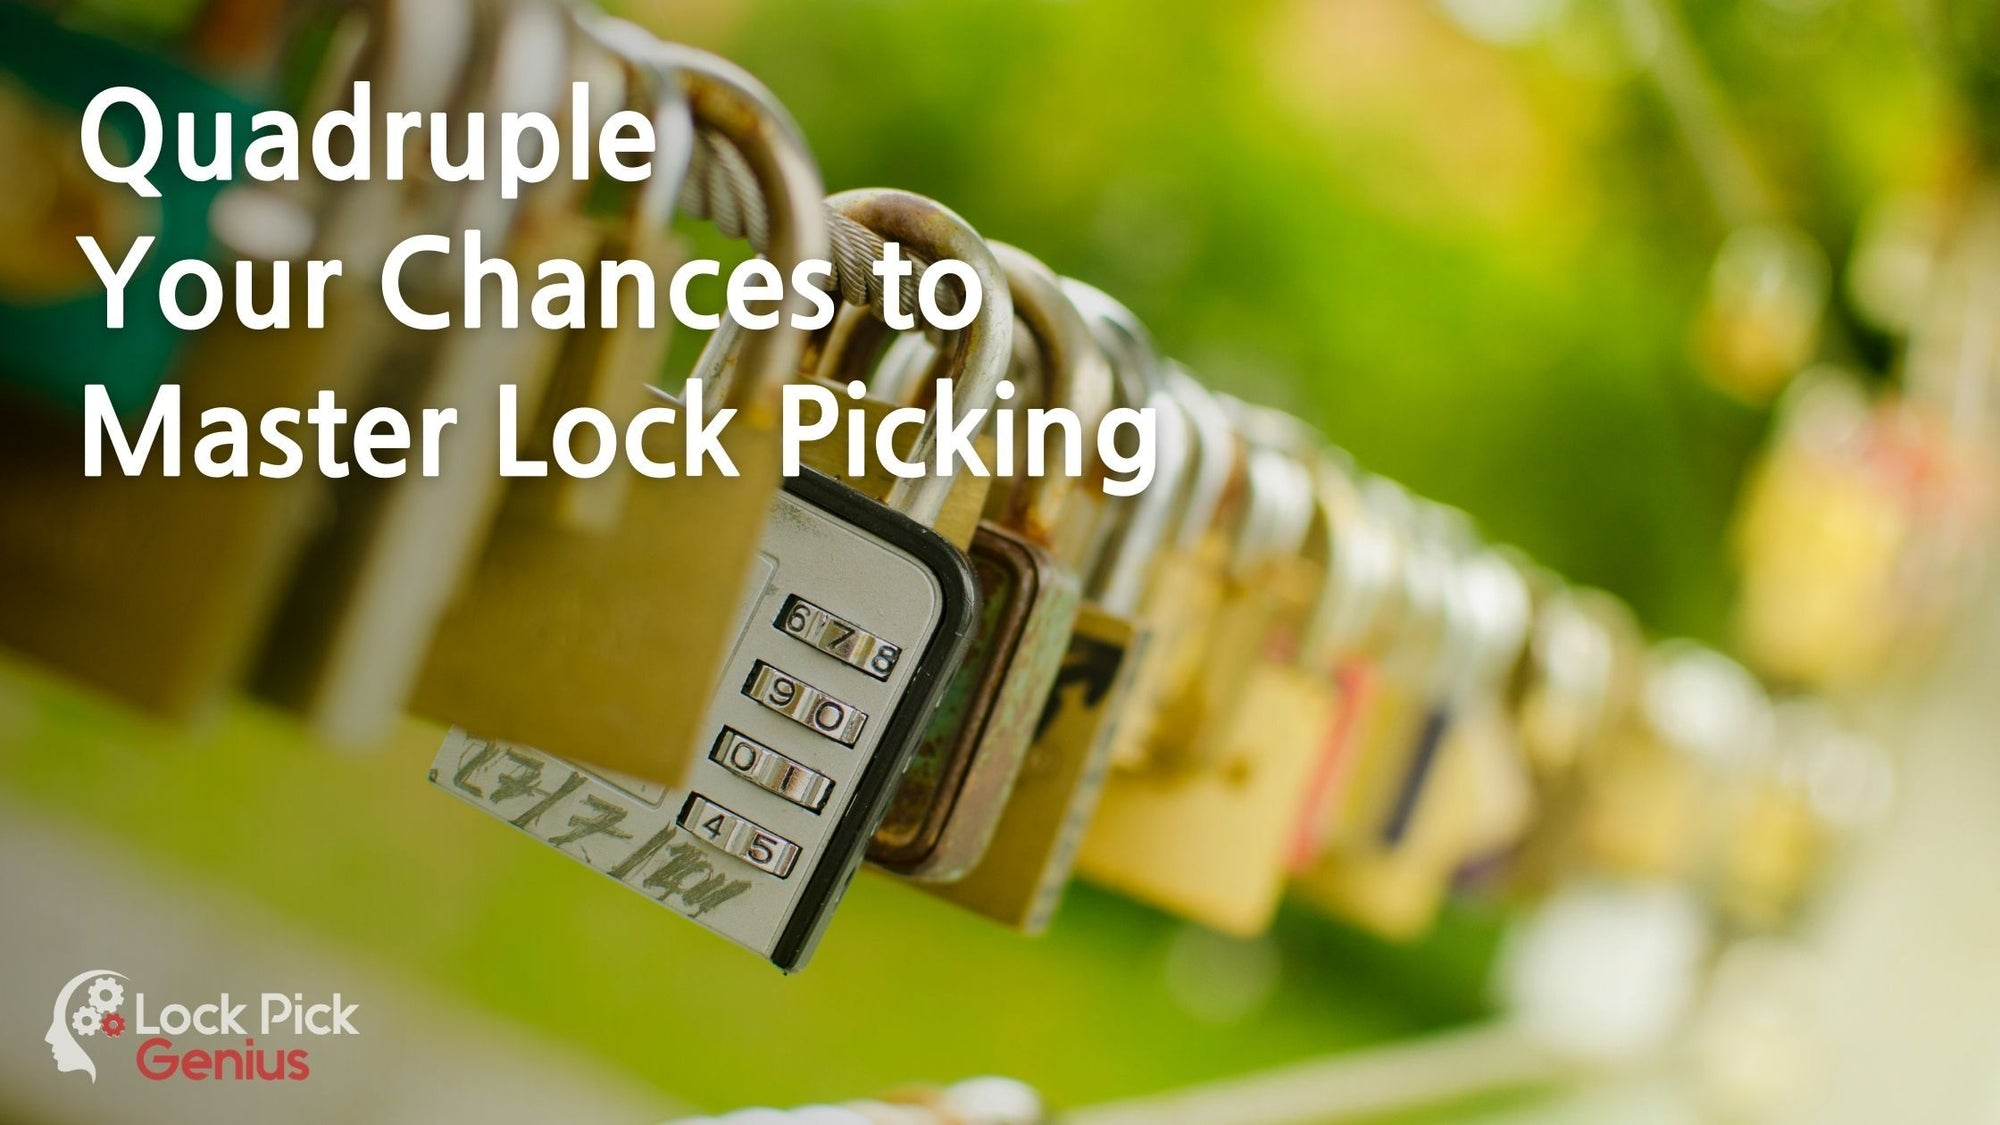 Quadruple Your Chances to Master Lock Picking or Get Your Money Back